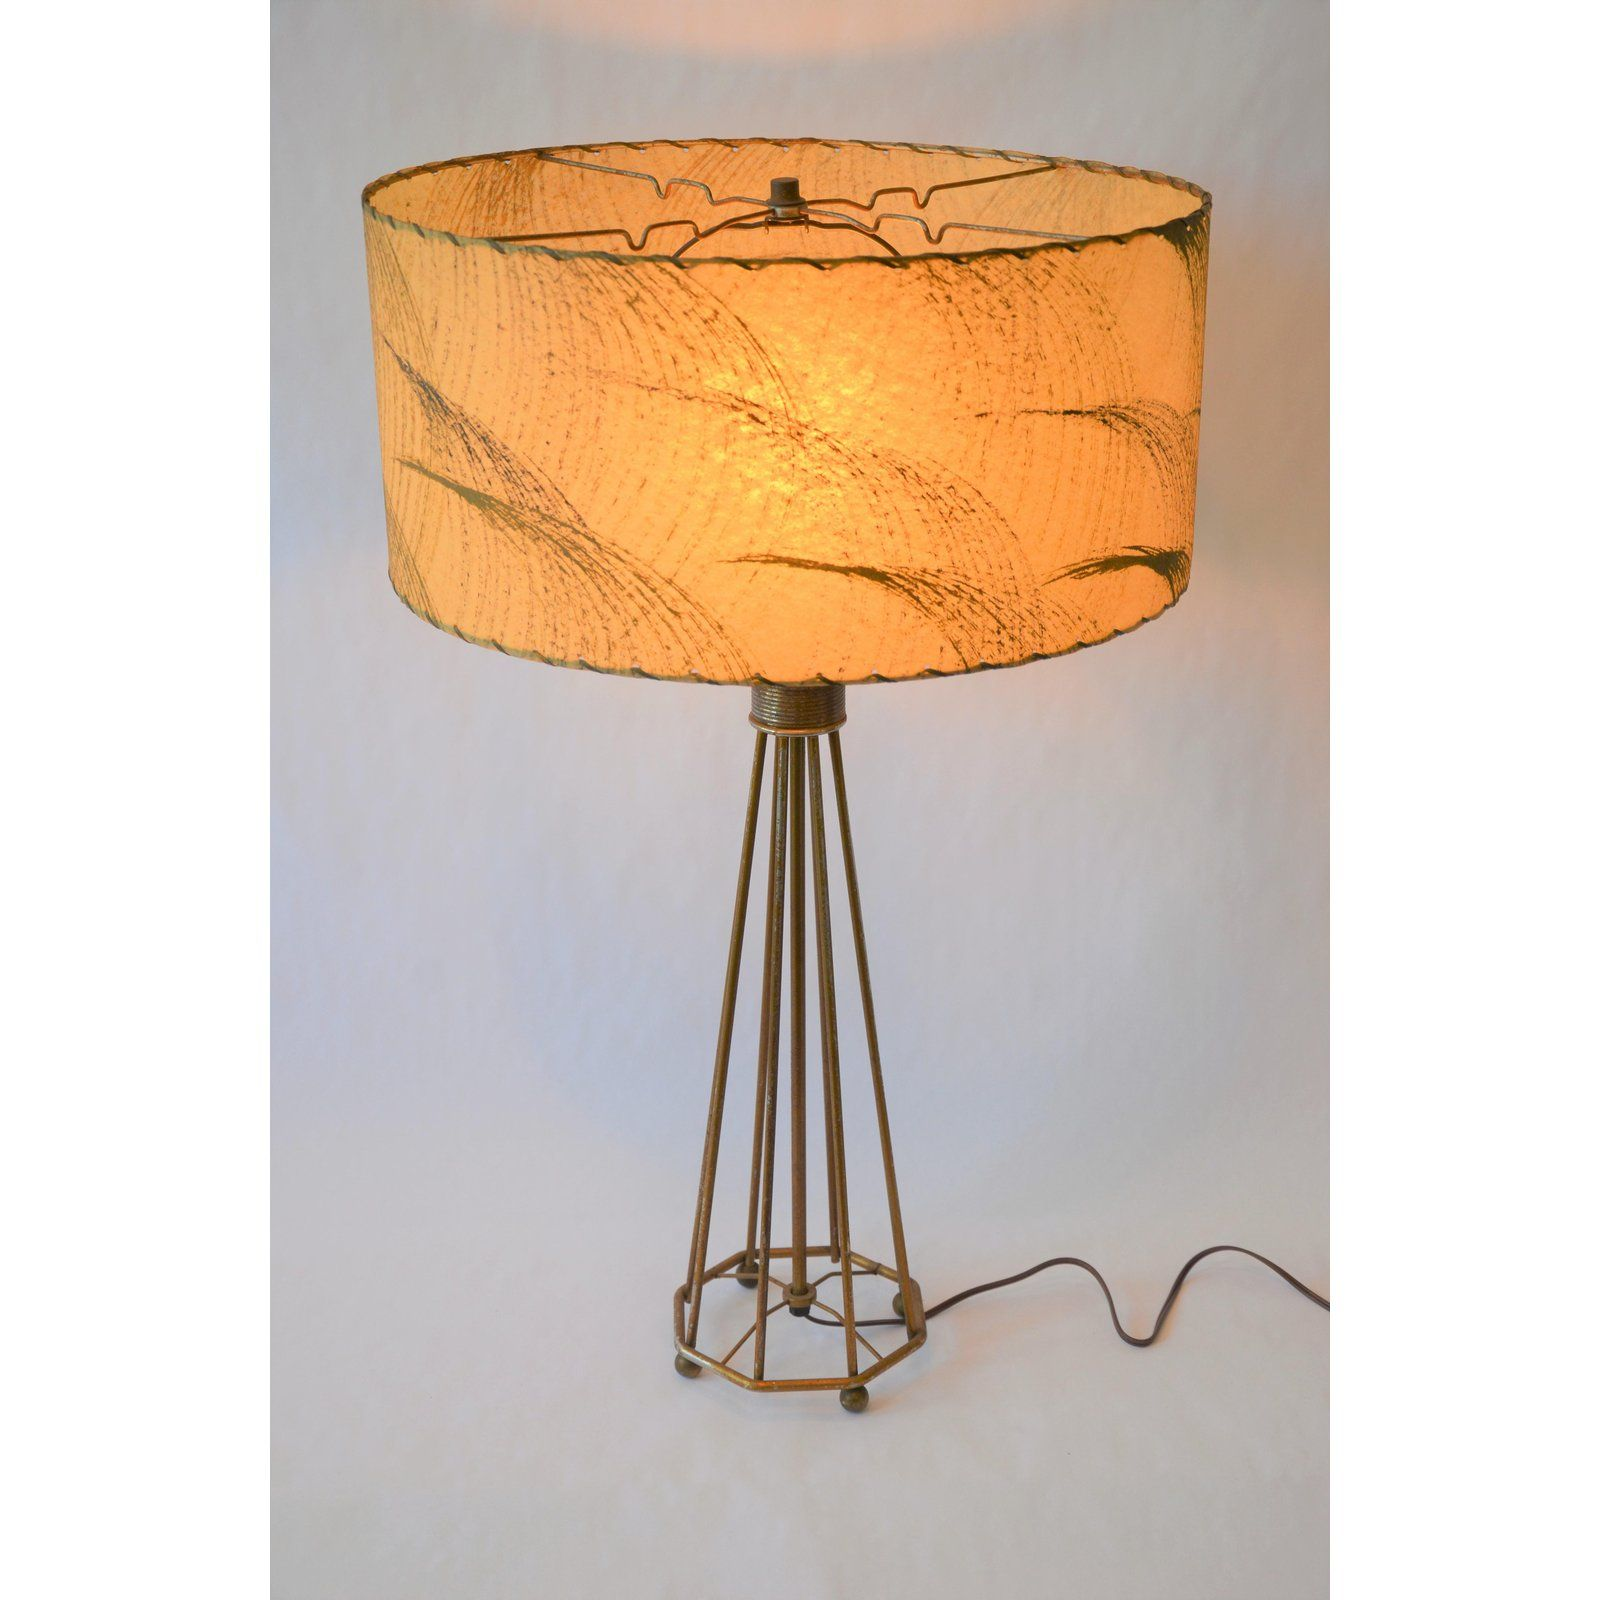 Amazing Mid Century Atomic Era 1950s Wire Frame Lamp With Laced Fiberglass Shade This Large Scale Lamp Is In Beautiful Lamp Table Lamp Lamp Shade